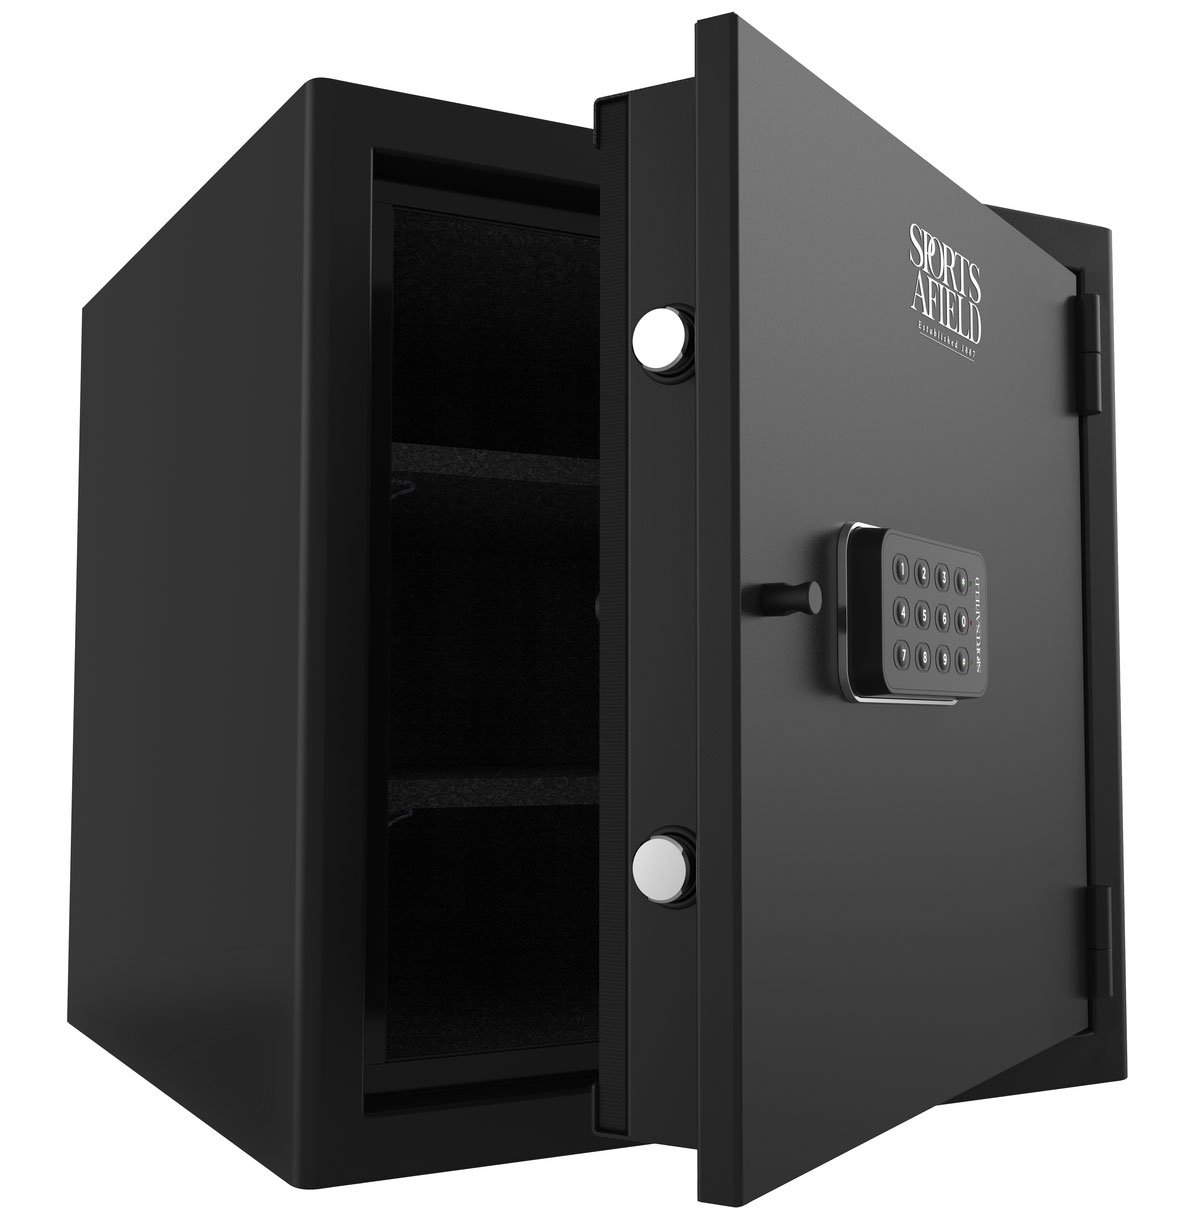 Sports Afield SA-ES03 Home and Office Fire Safe, 20x20